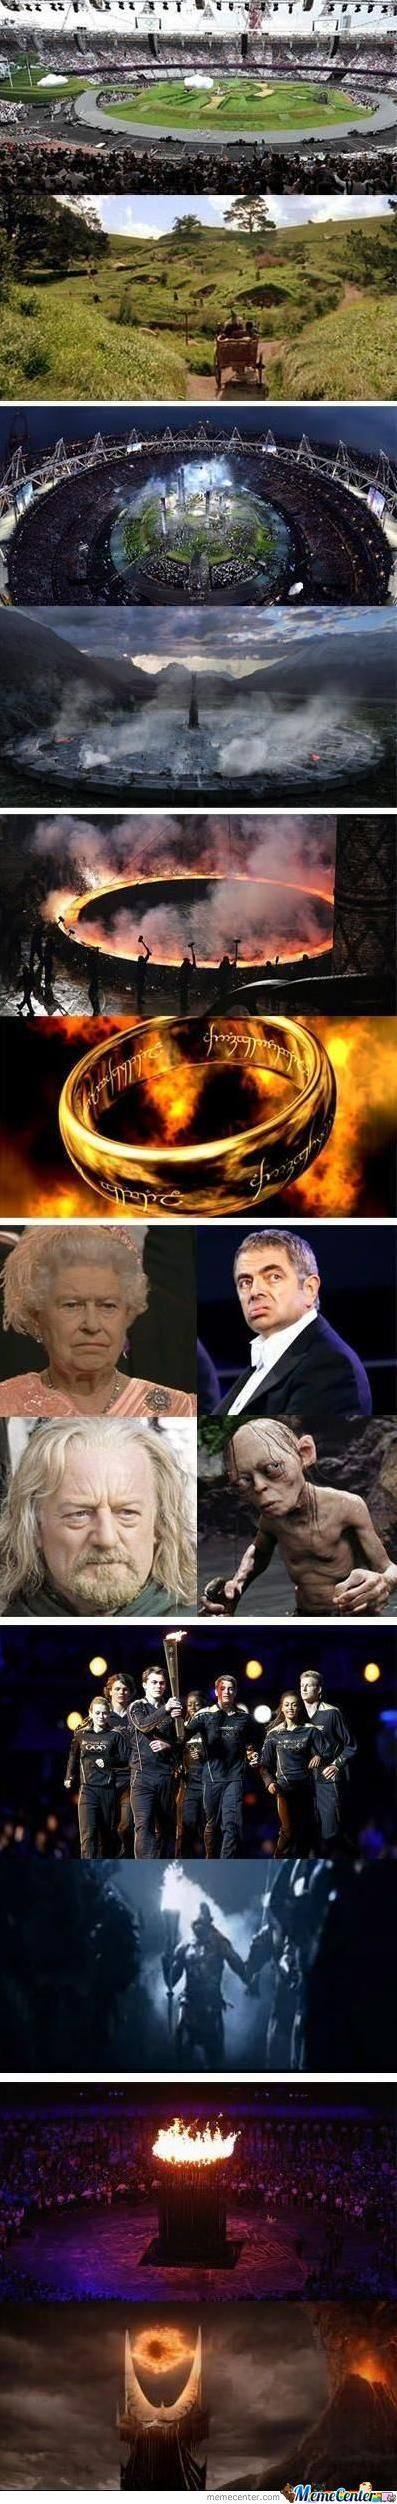 The Olympic Opening Was Lord Of The Rings!